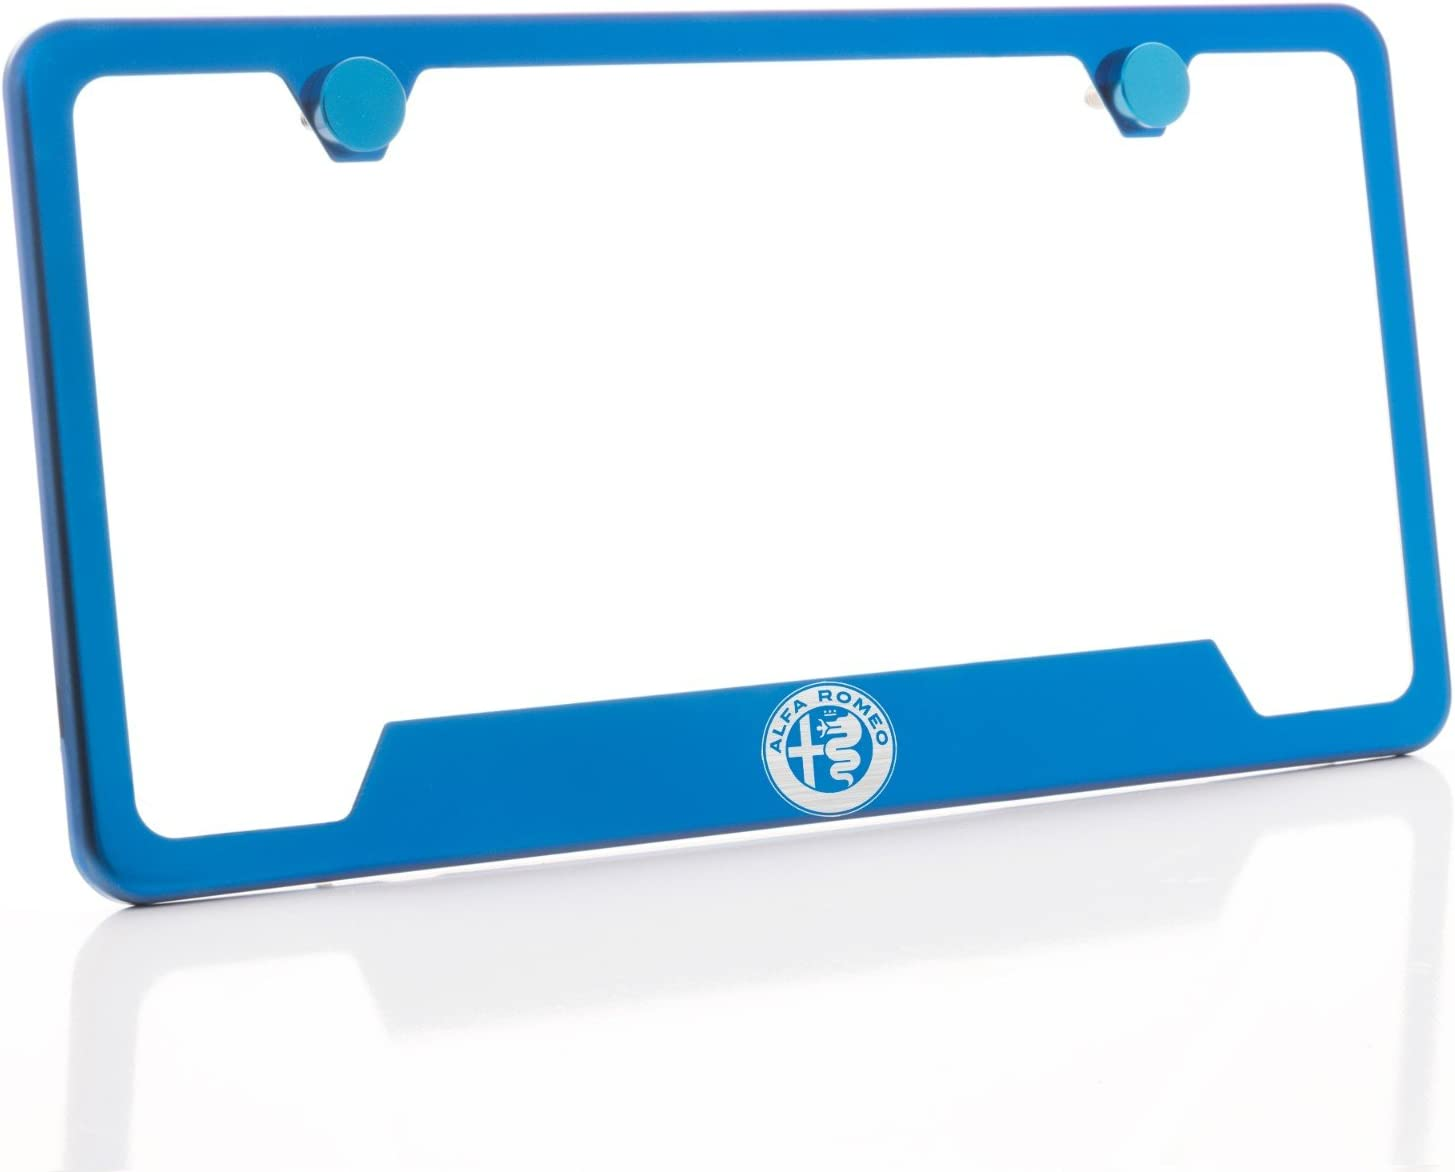 KA Depot One Fit Alfa Romeo Logo on Candy Blue Chrome Bottom Cut Out Stainless Steel License Plate Frame Holder Front Or Rear Bracket Laser Etch Engraved Aluminum Screw Cap